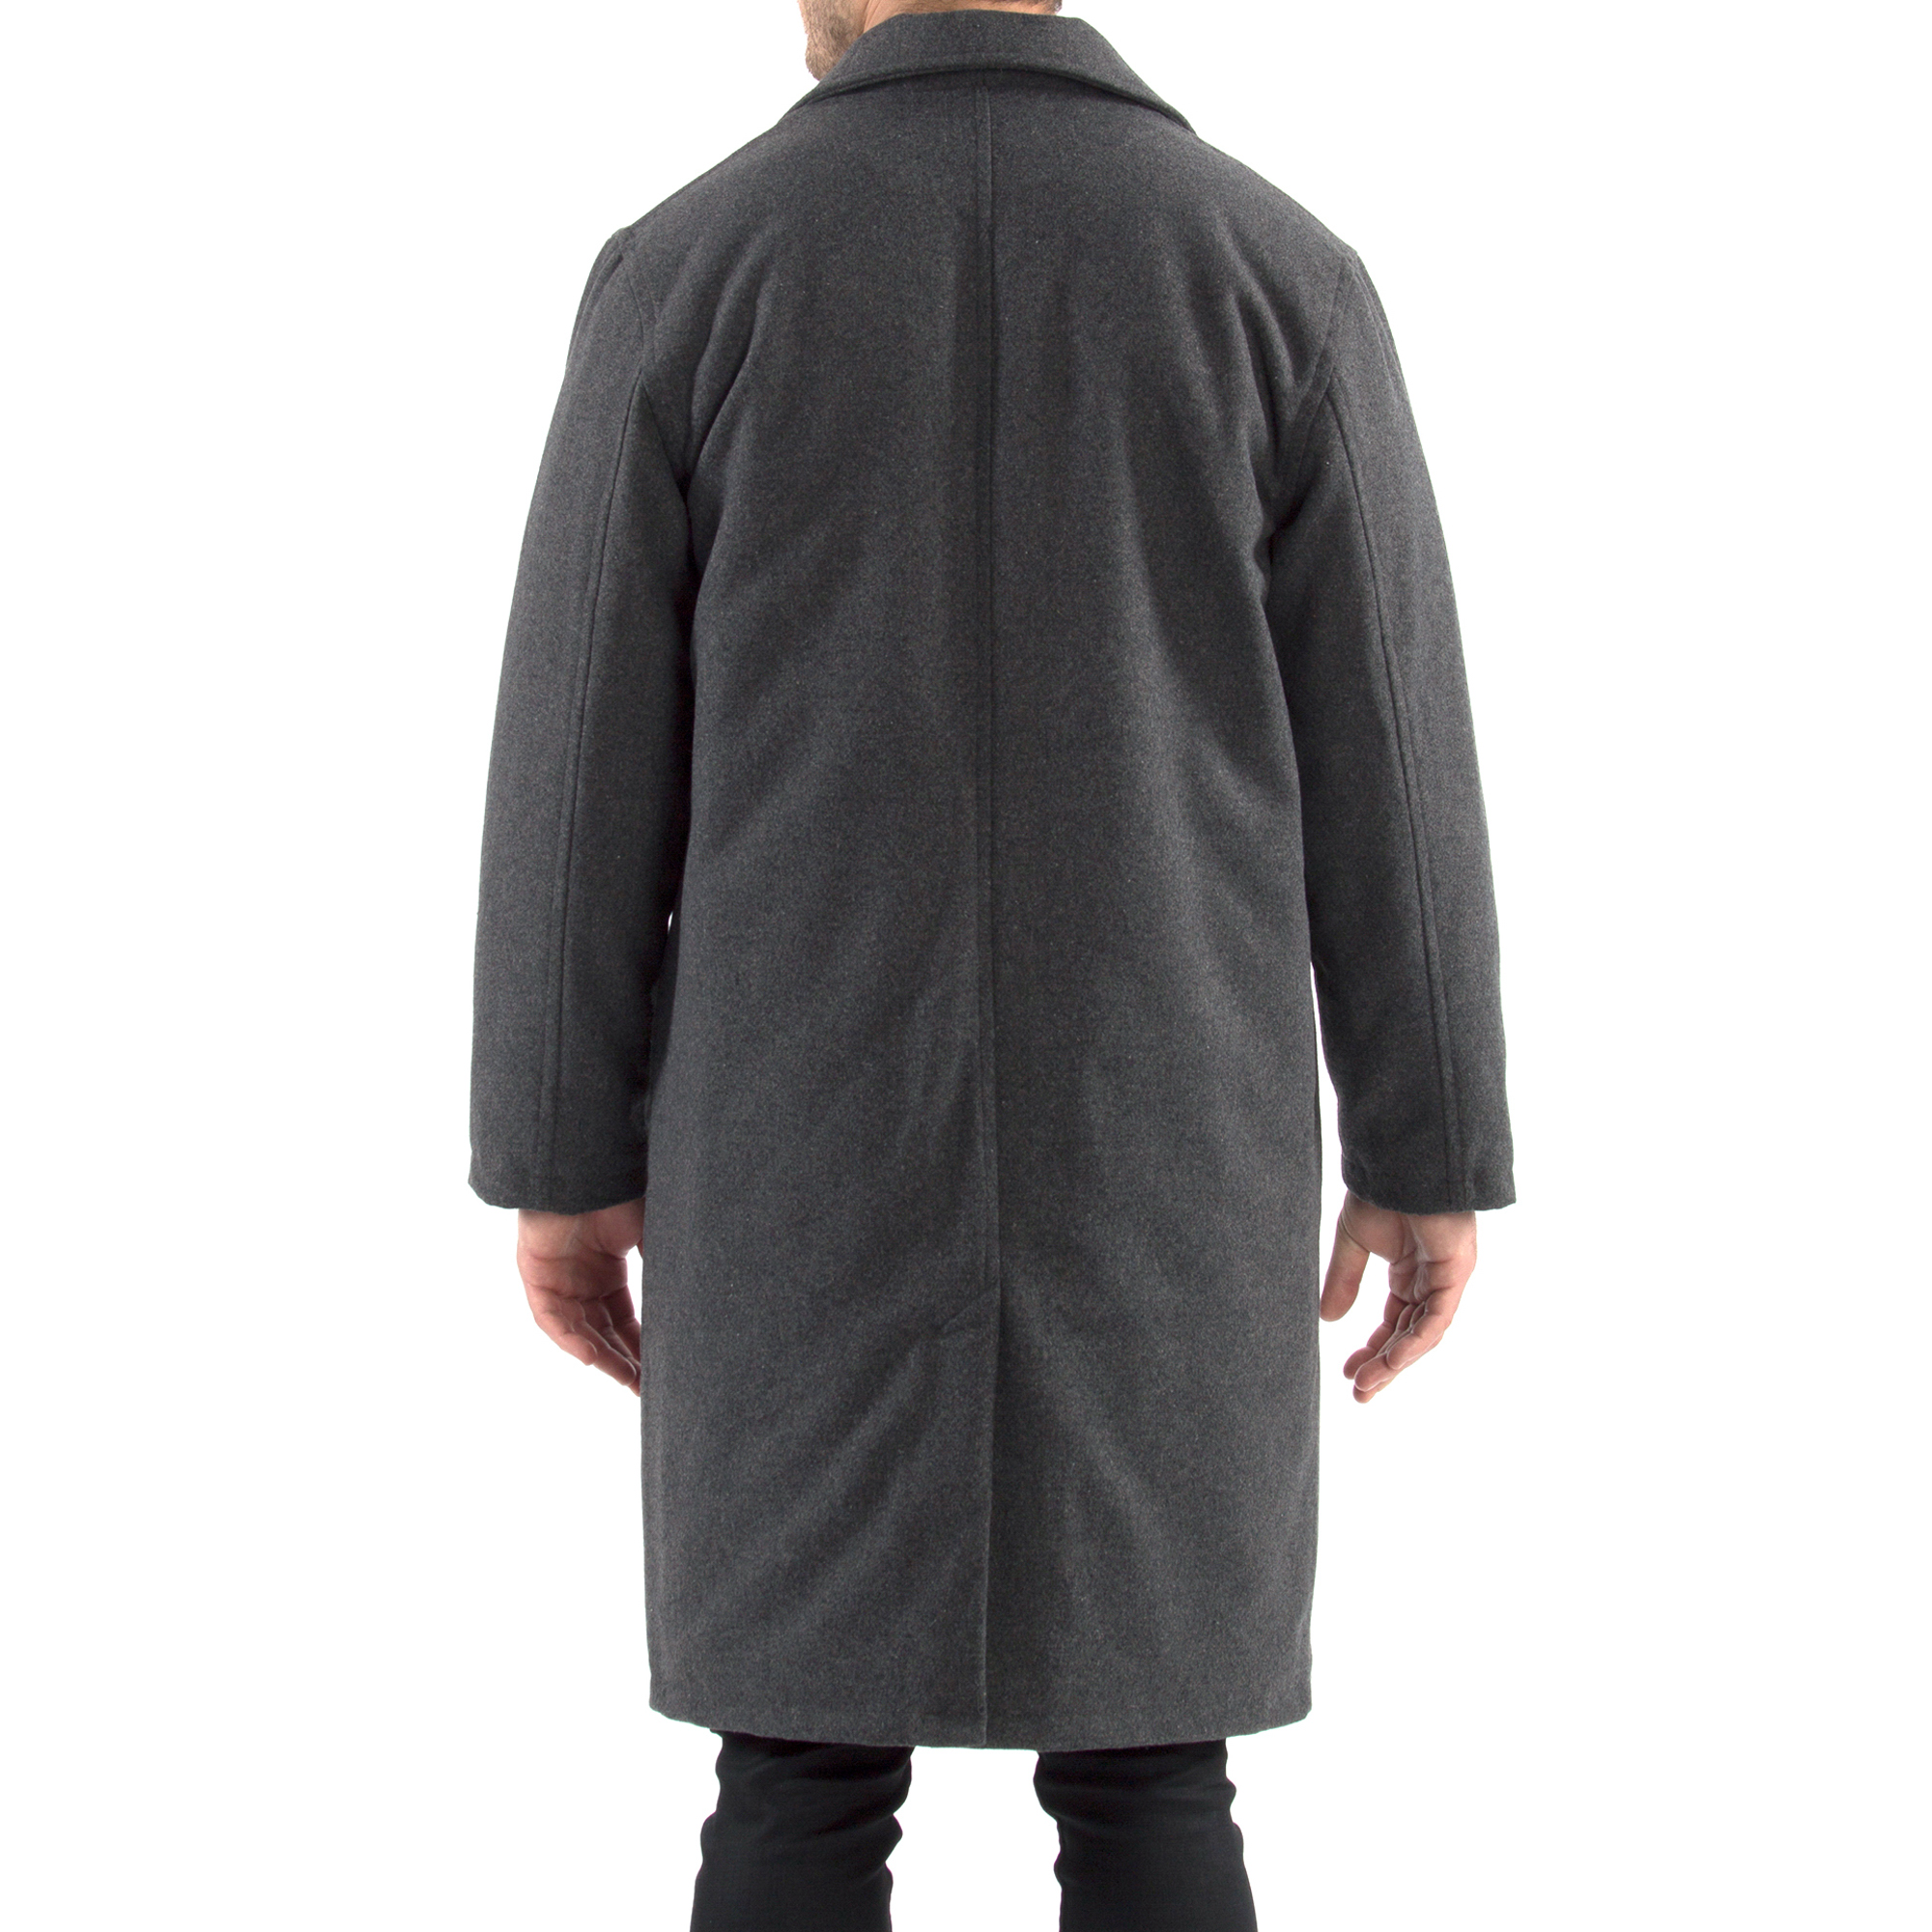 Alpine-Swiss-Mens-Zach-Knee-Length-Jacket-Top-Coat-Trench-Wool-Blend-Overcoat thumbnail 39